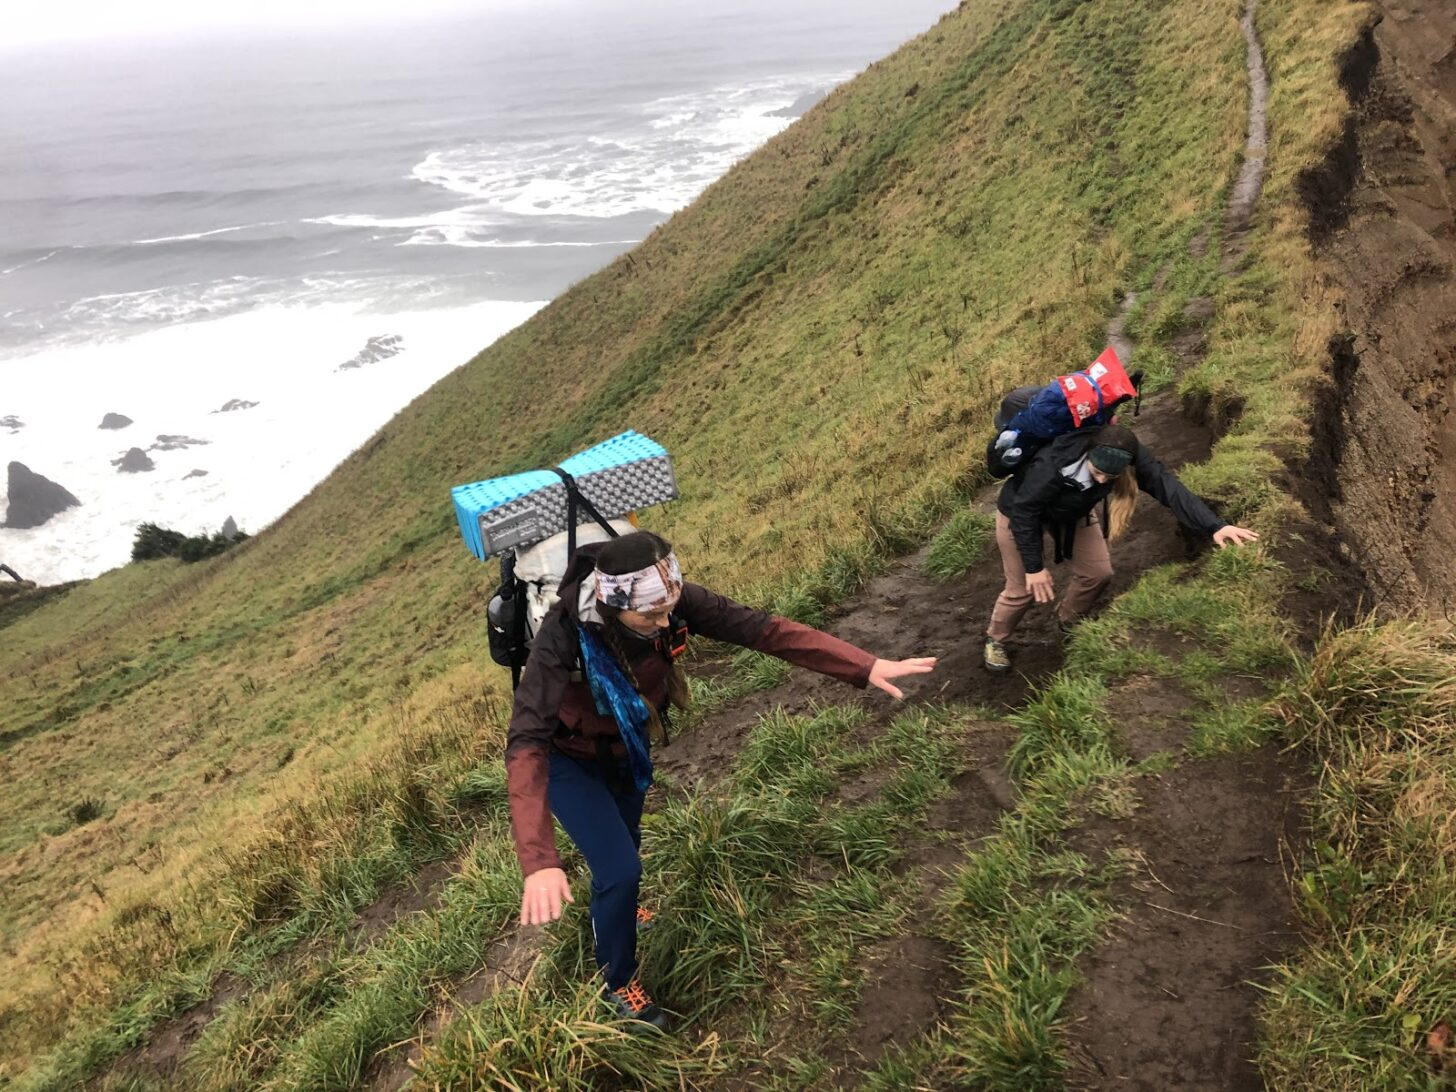 two women struggle up a steep slope with the ocean in the background.